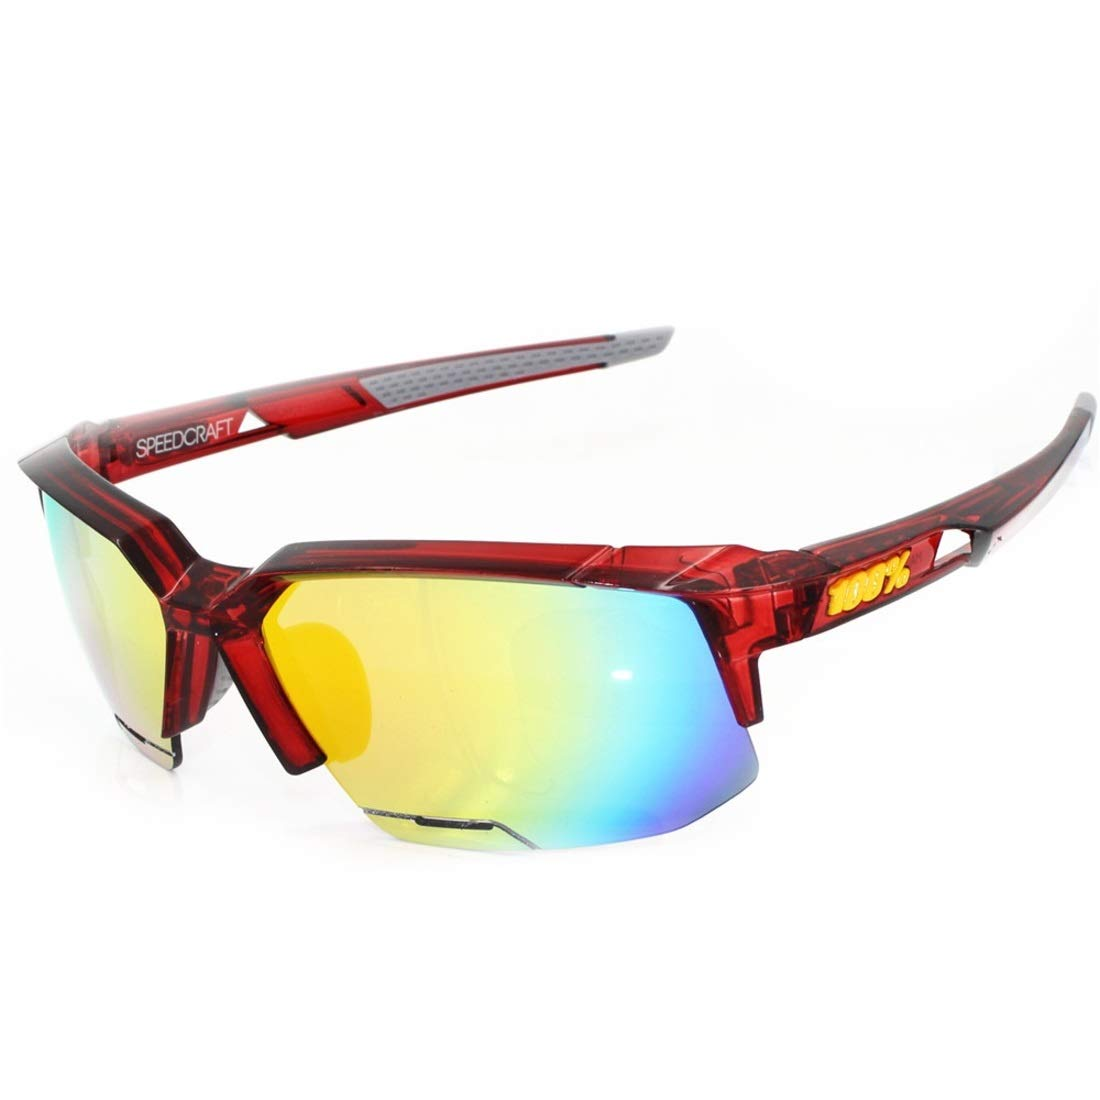 BAOYIT Polarized Sports Running Night Vision Riding Glasses Ultra-Light Frame Riding The Mountain Bike Motorcycle Men and Women Riding (Color : Red) by BAOYIT